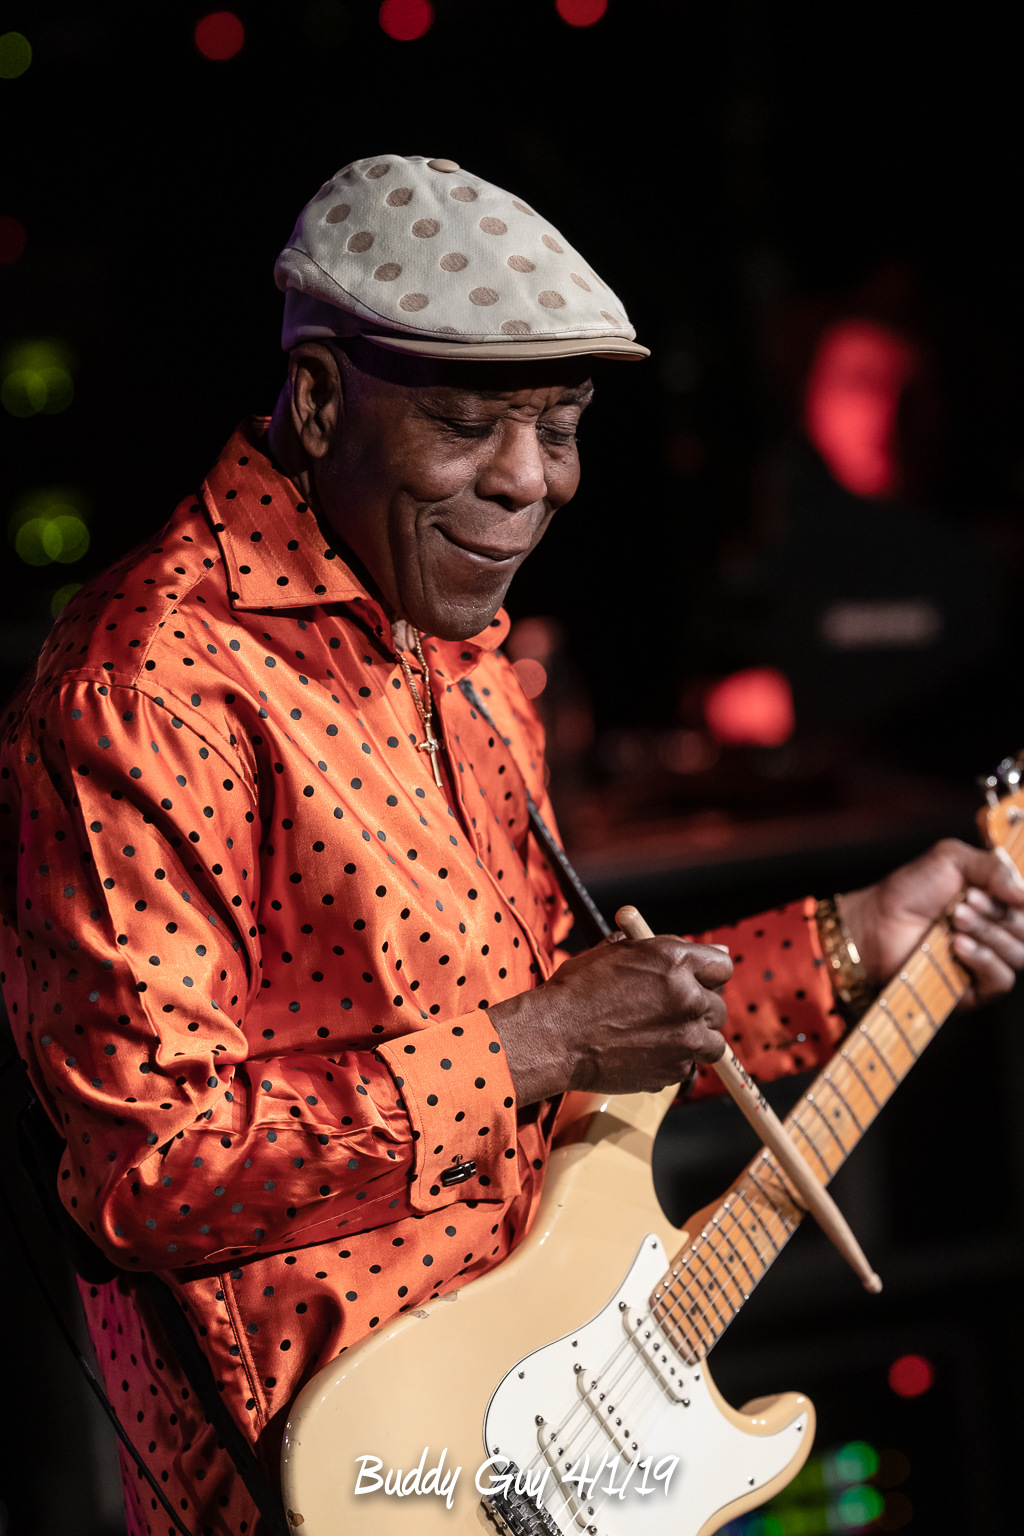 Buddy Guy 4/1/19